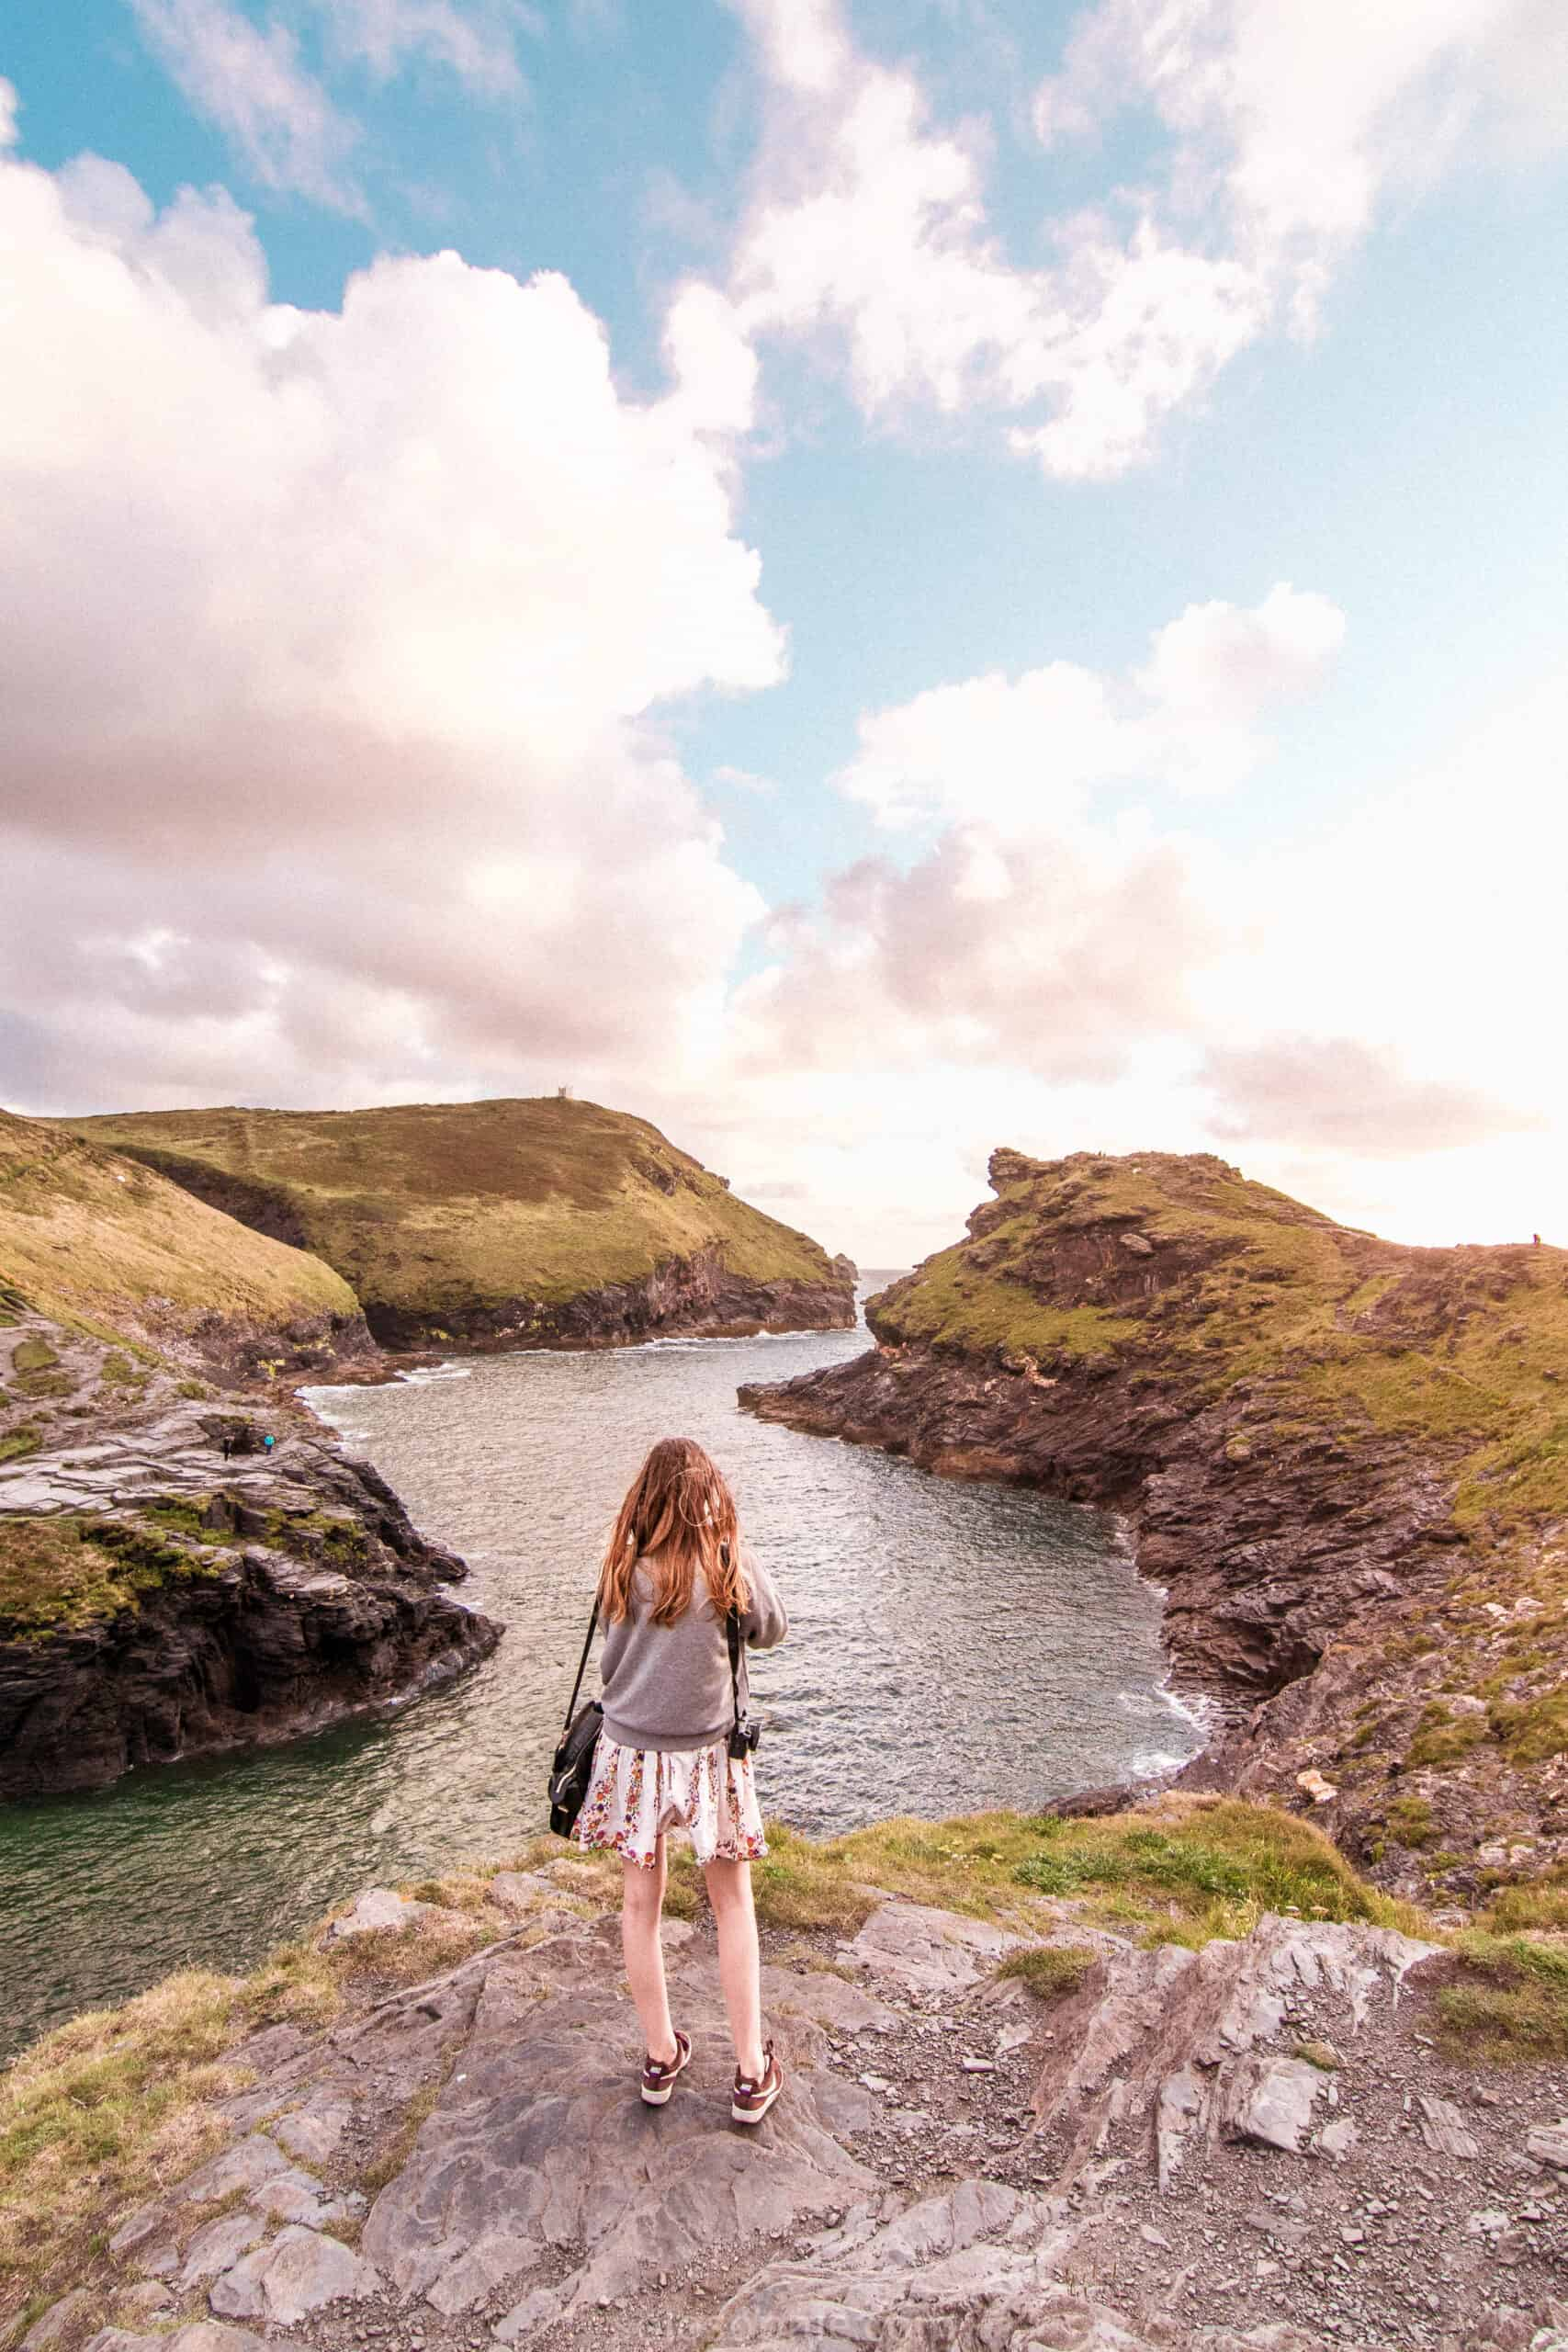 Planning your first solo trip: considerations, tips, tricks & practical advice for your first time travelling alone!